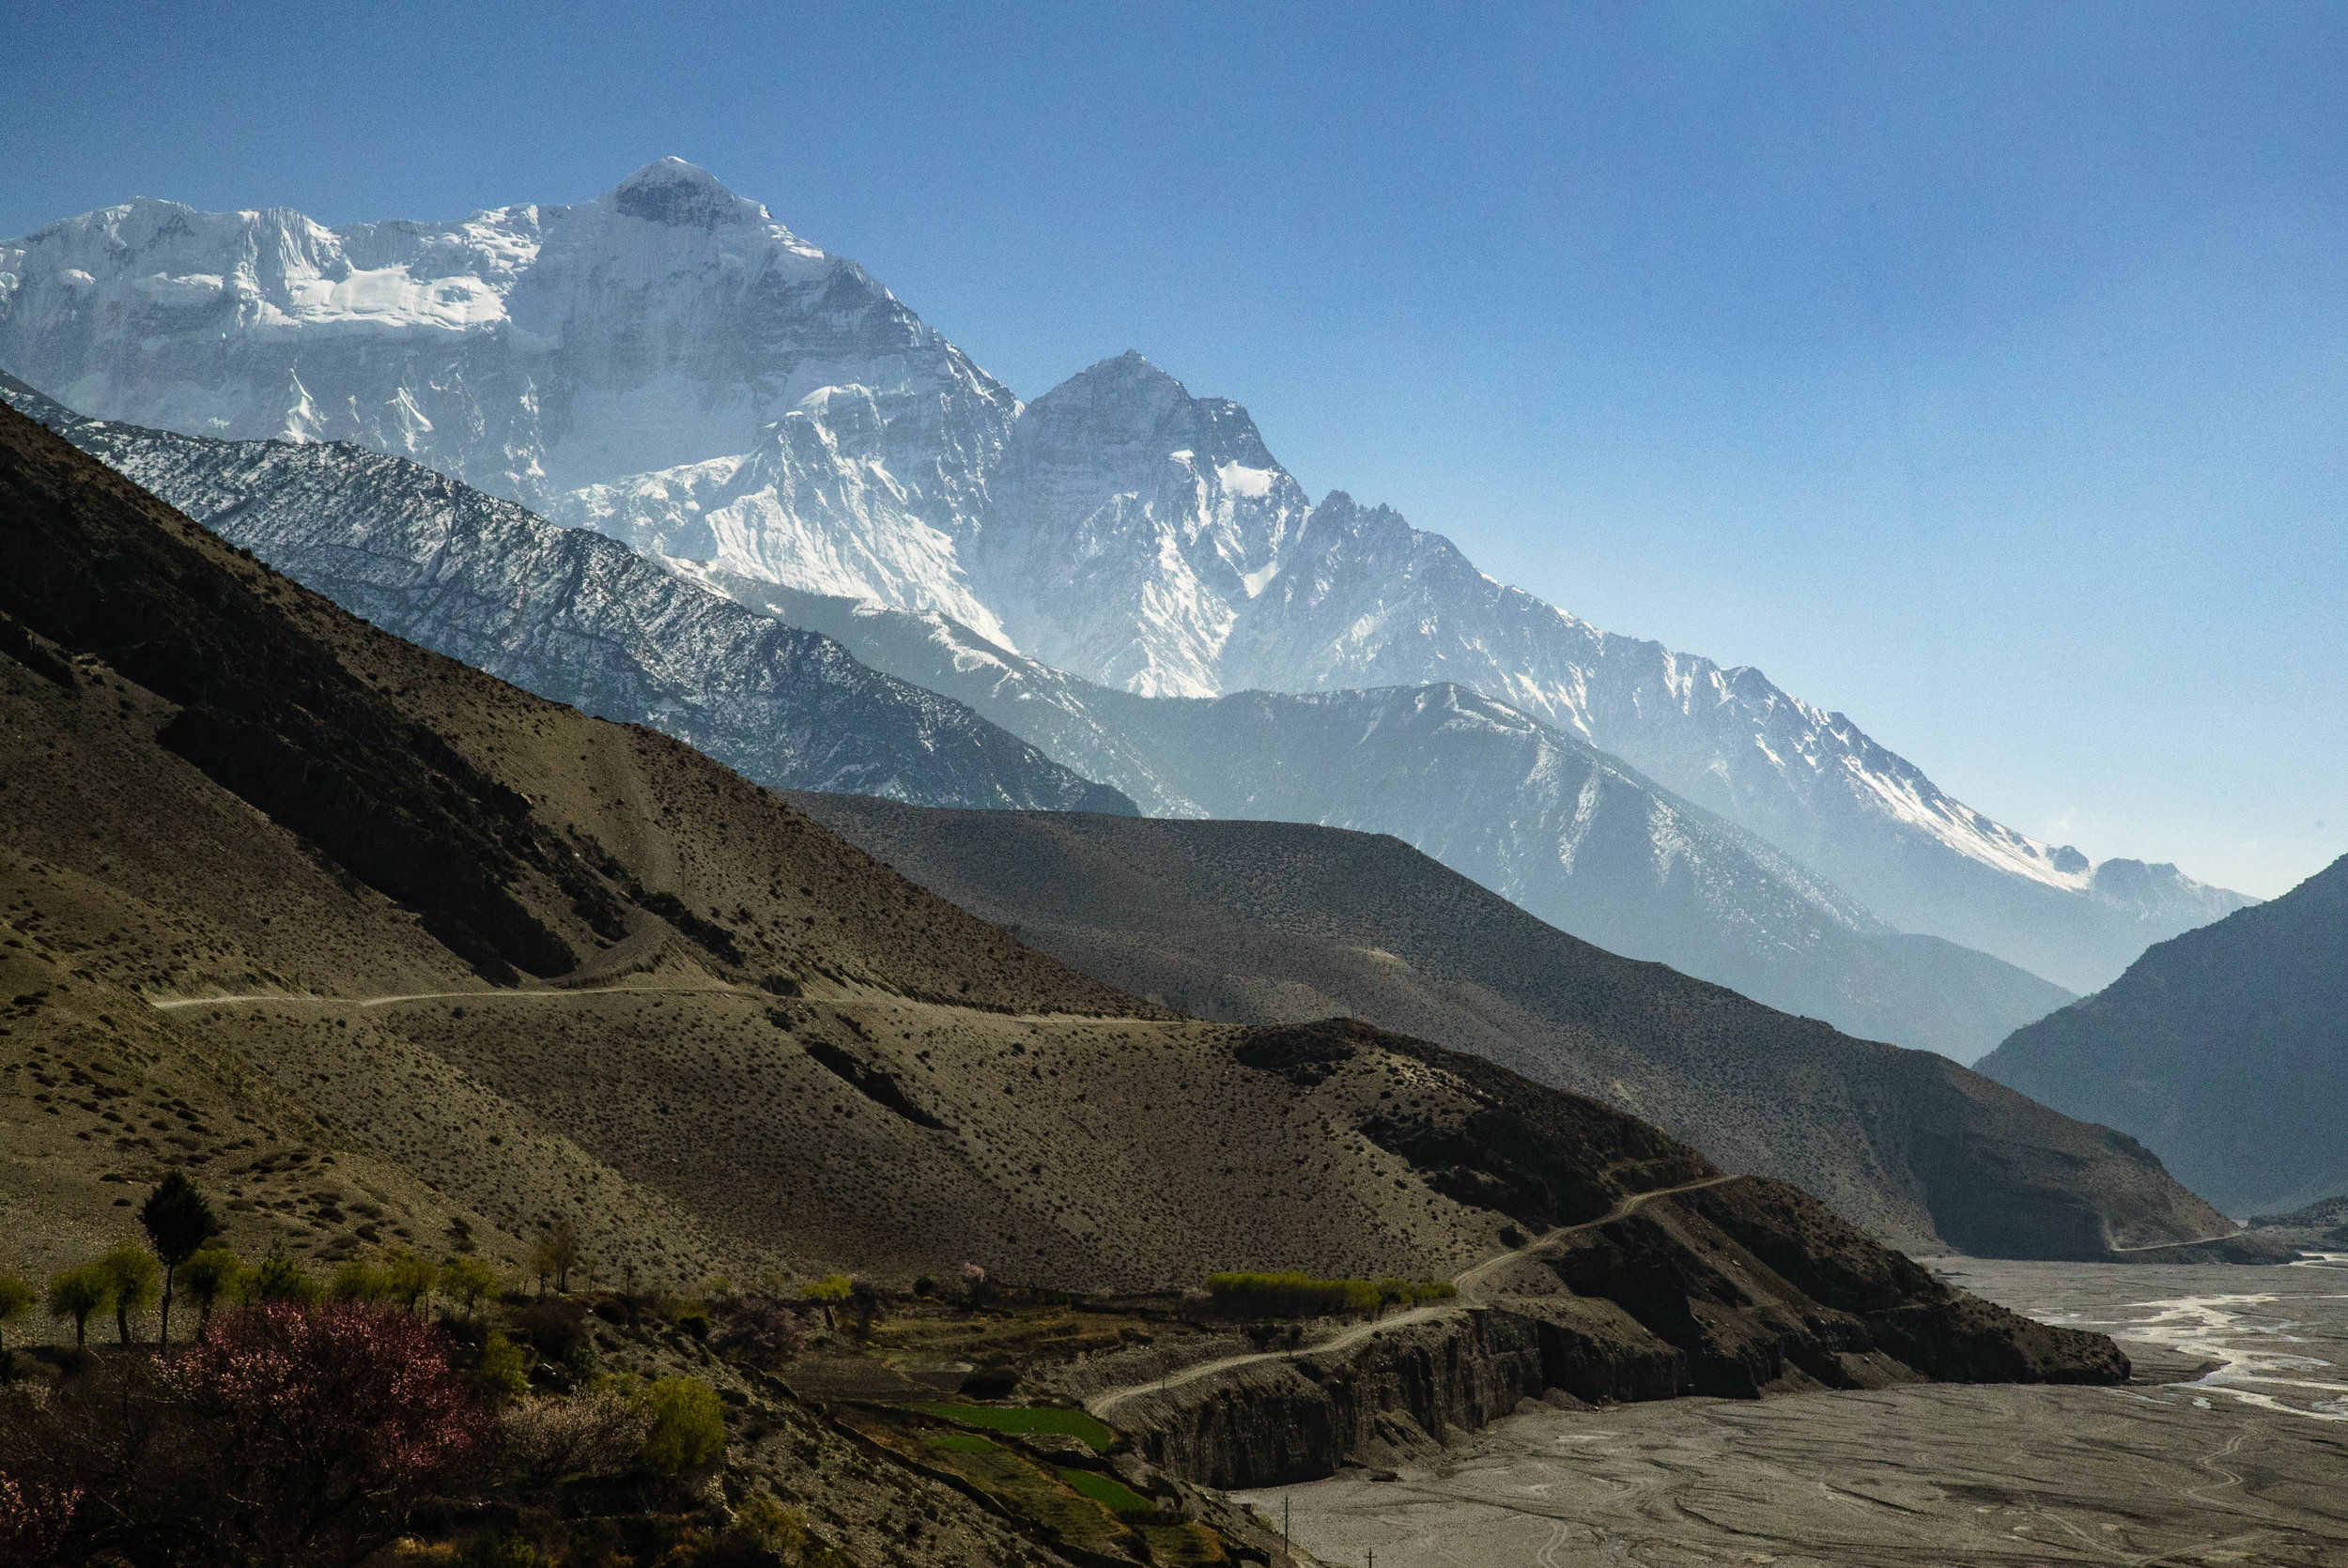 The way to Jomsom